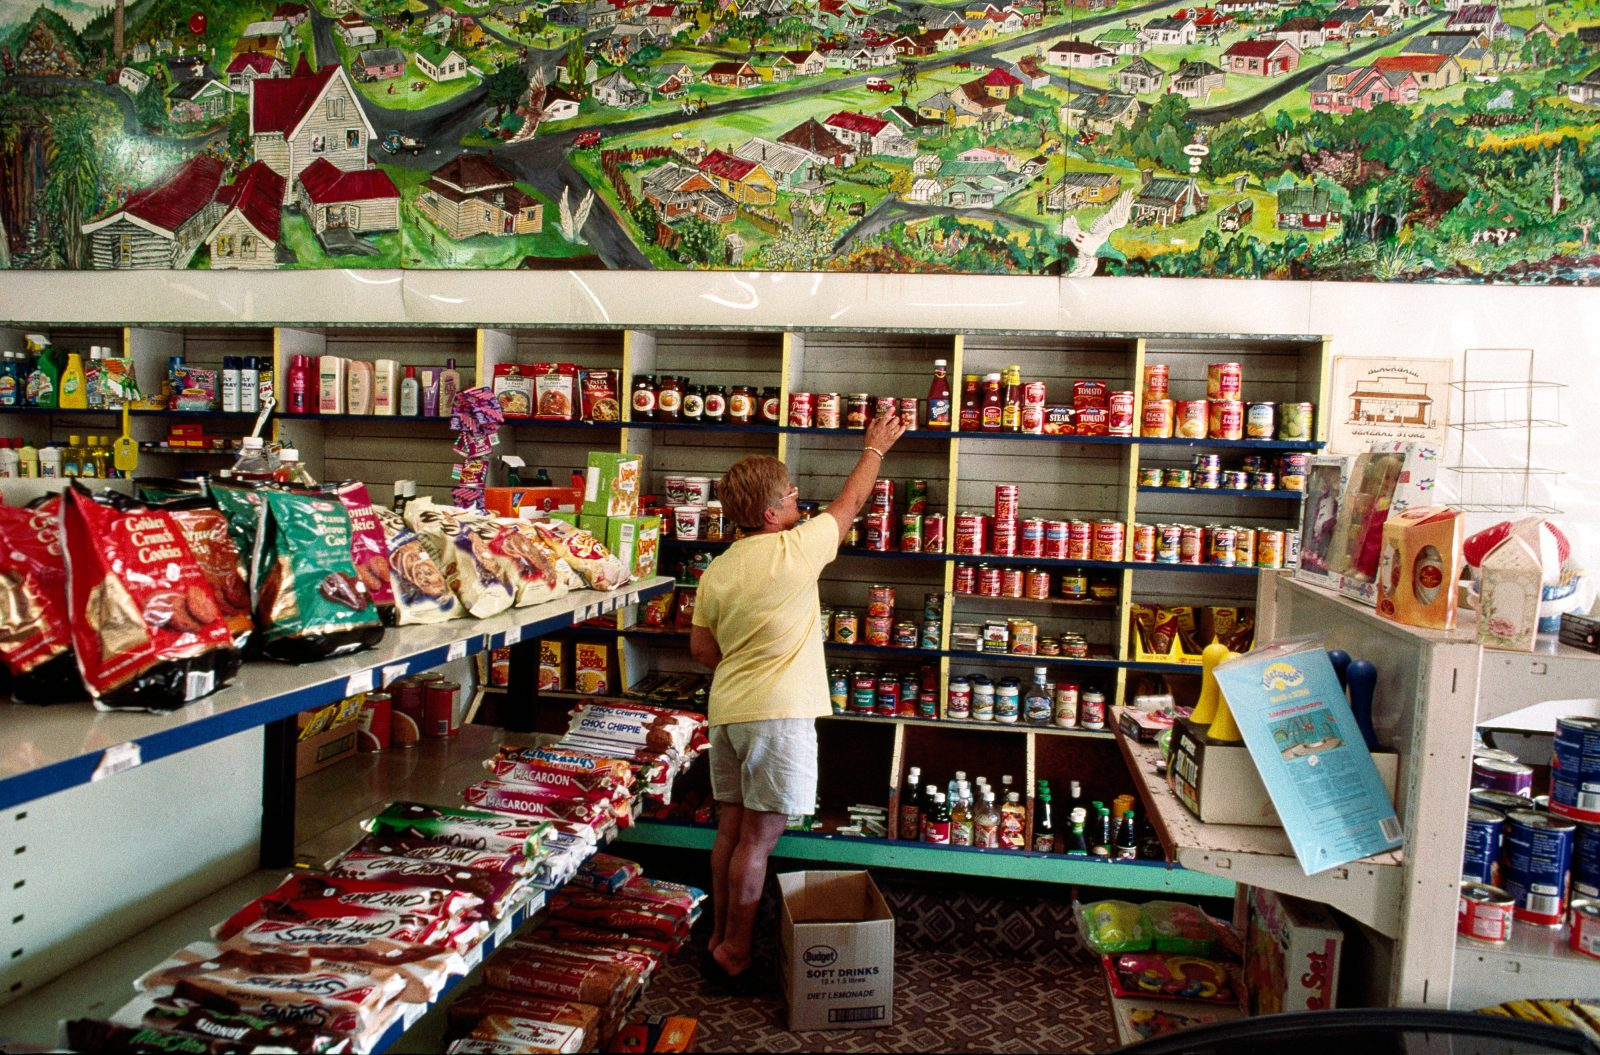 """We try to stock a little of everything,"" says Bernadette Murdoch, who, with husband Keith, runs the Blackball General Store. Opened in 1904, it features a 15-metre mural of the town painted by local artist Jerry Fulford."